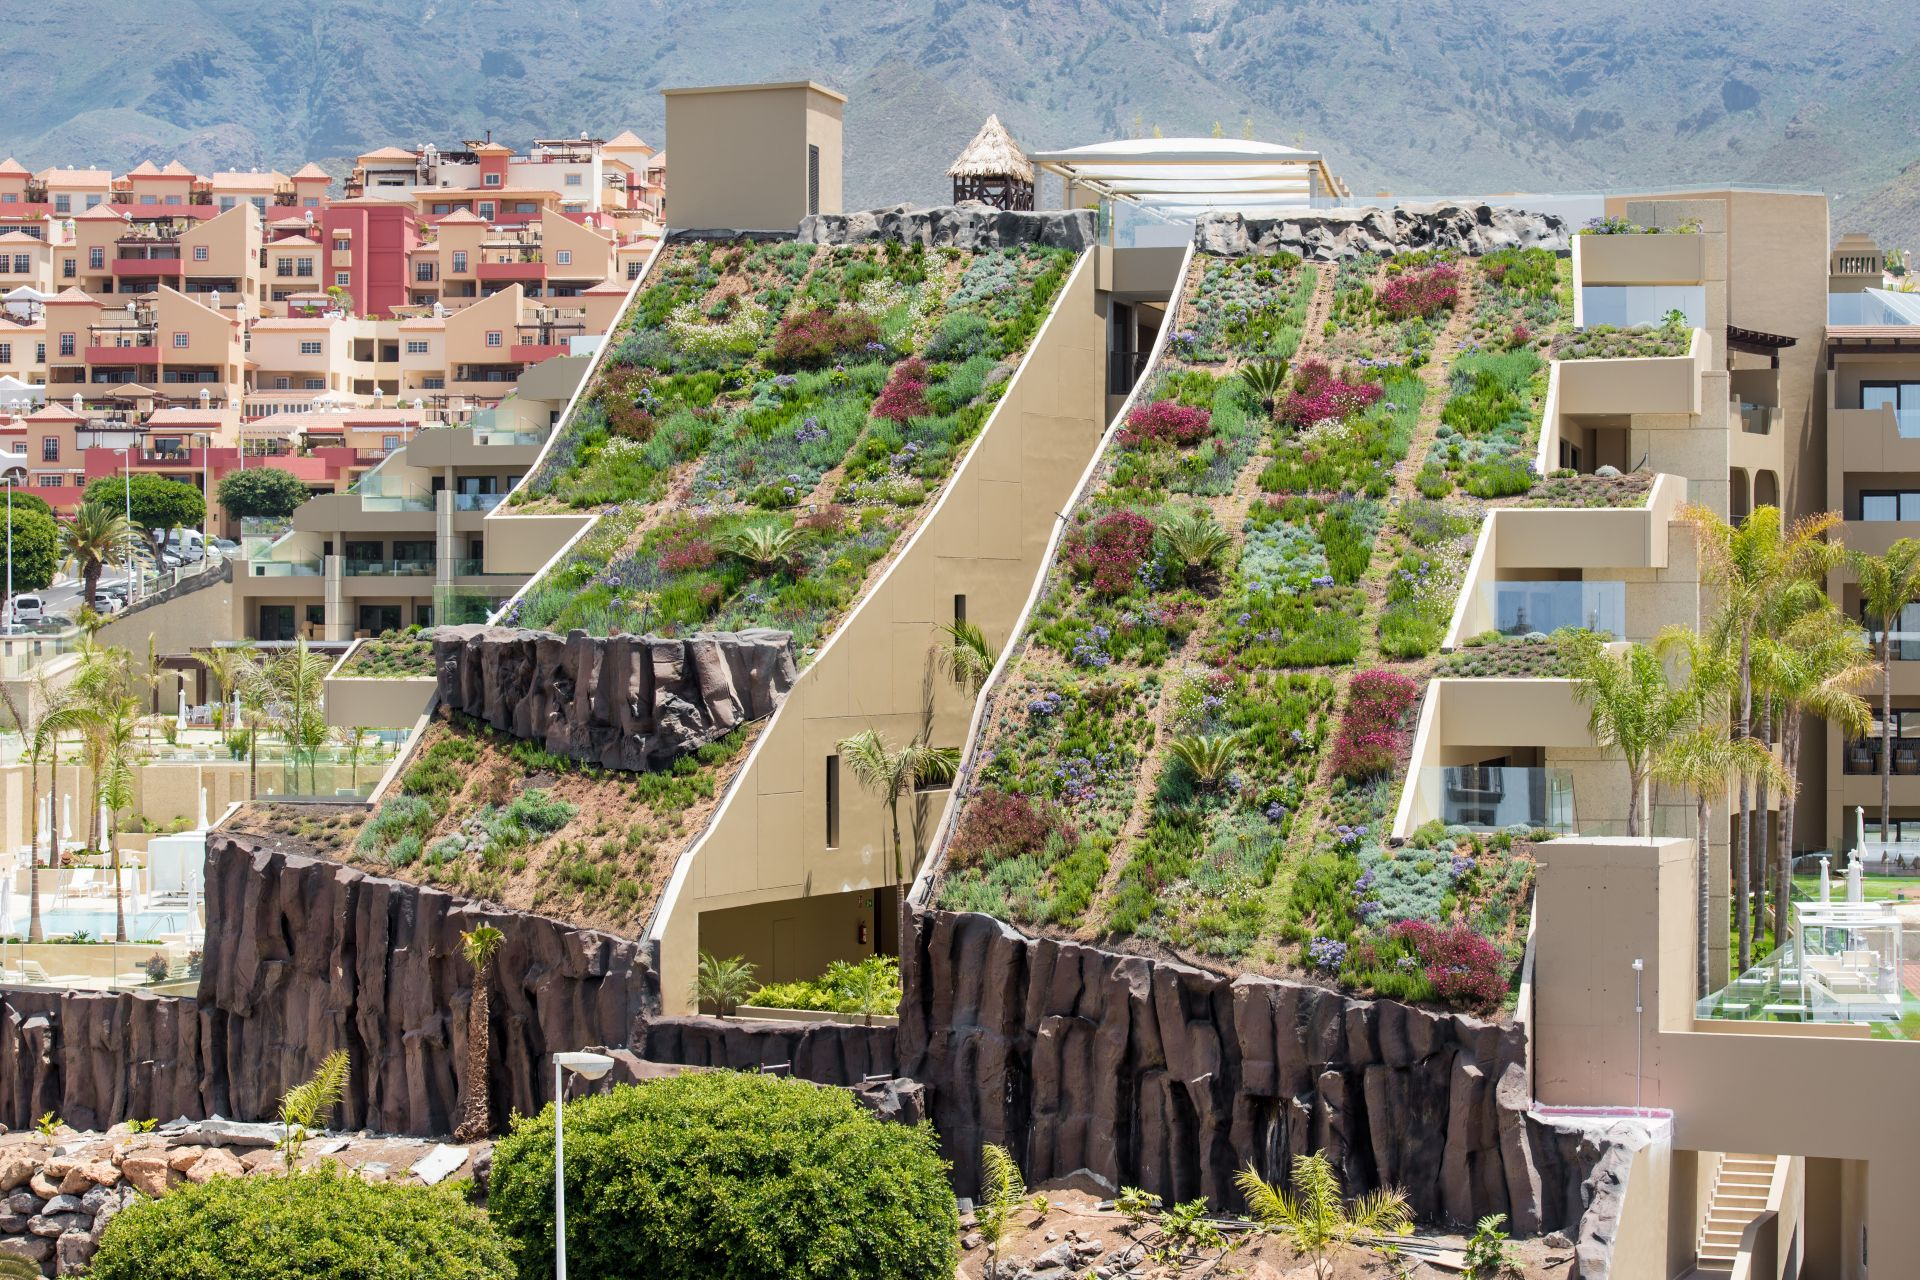 Green roof with single-ply FPO membrane of Sarnafil system installed on GF Victoria Hotel in Tenerife in Spain